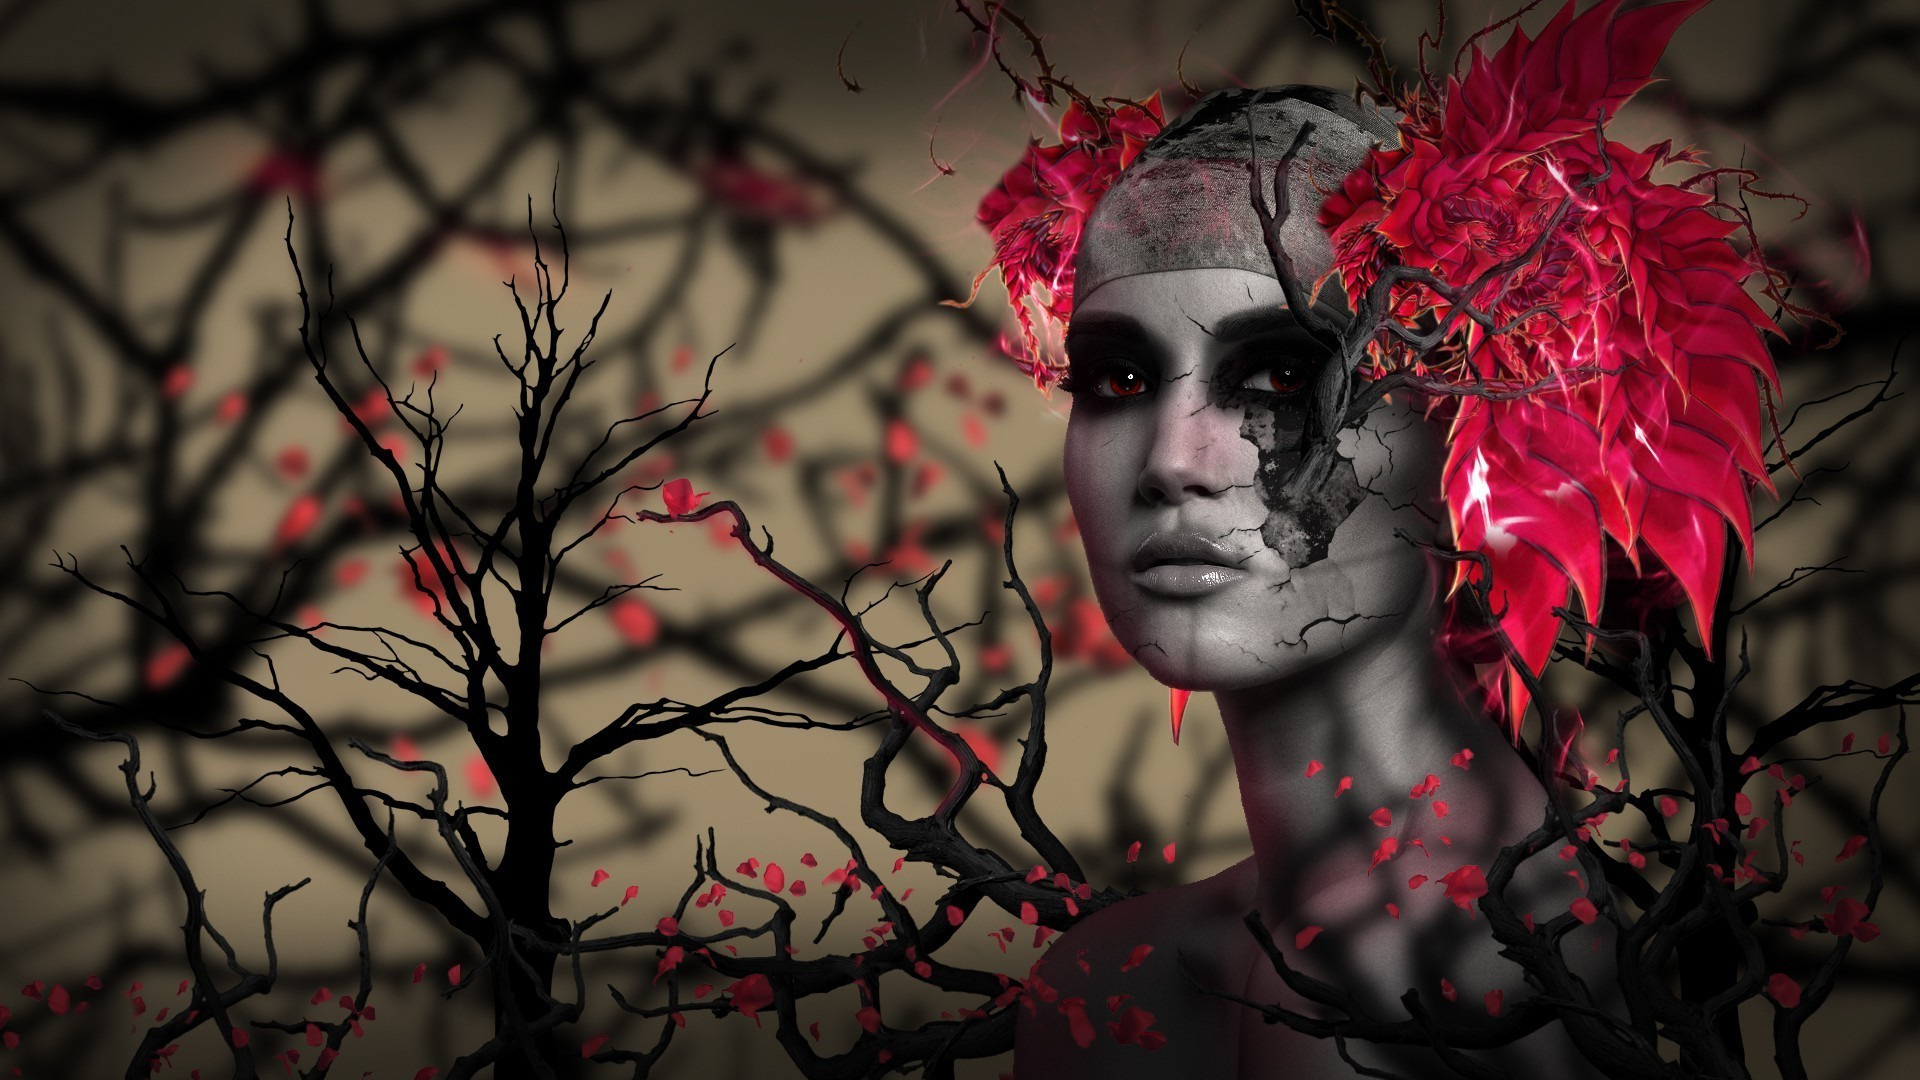 1920x1080 digital Art, 3D, CGI, Face, Women, Trees, Branch, Red Eyes, Leaves, Depth  Of Field, Feathers Wallpapers HD / Desktop and Mobile Backgrounds